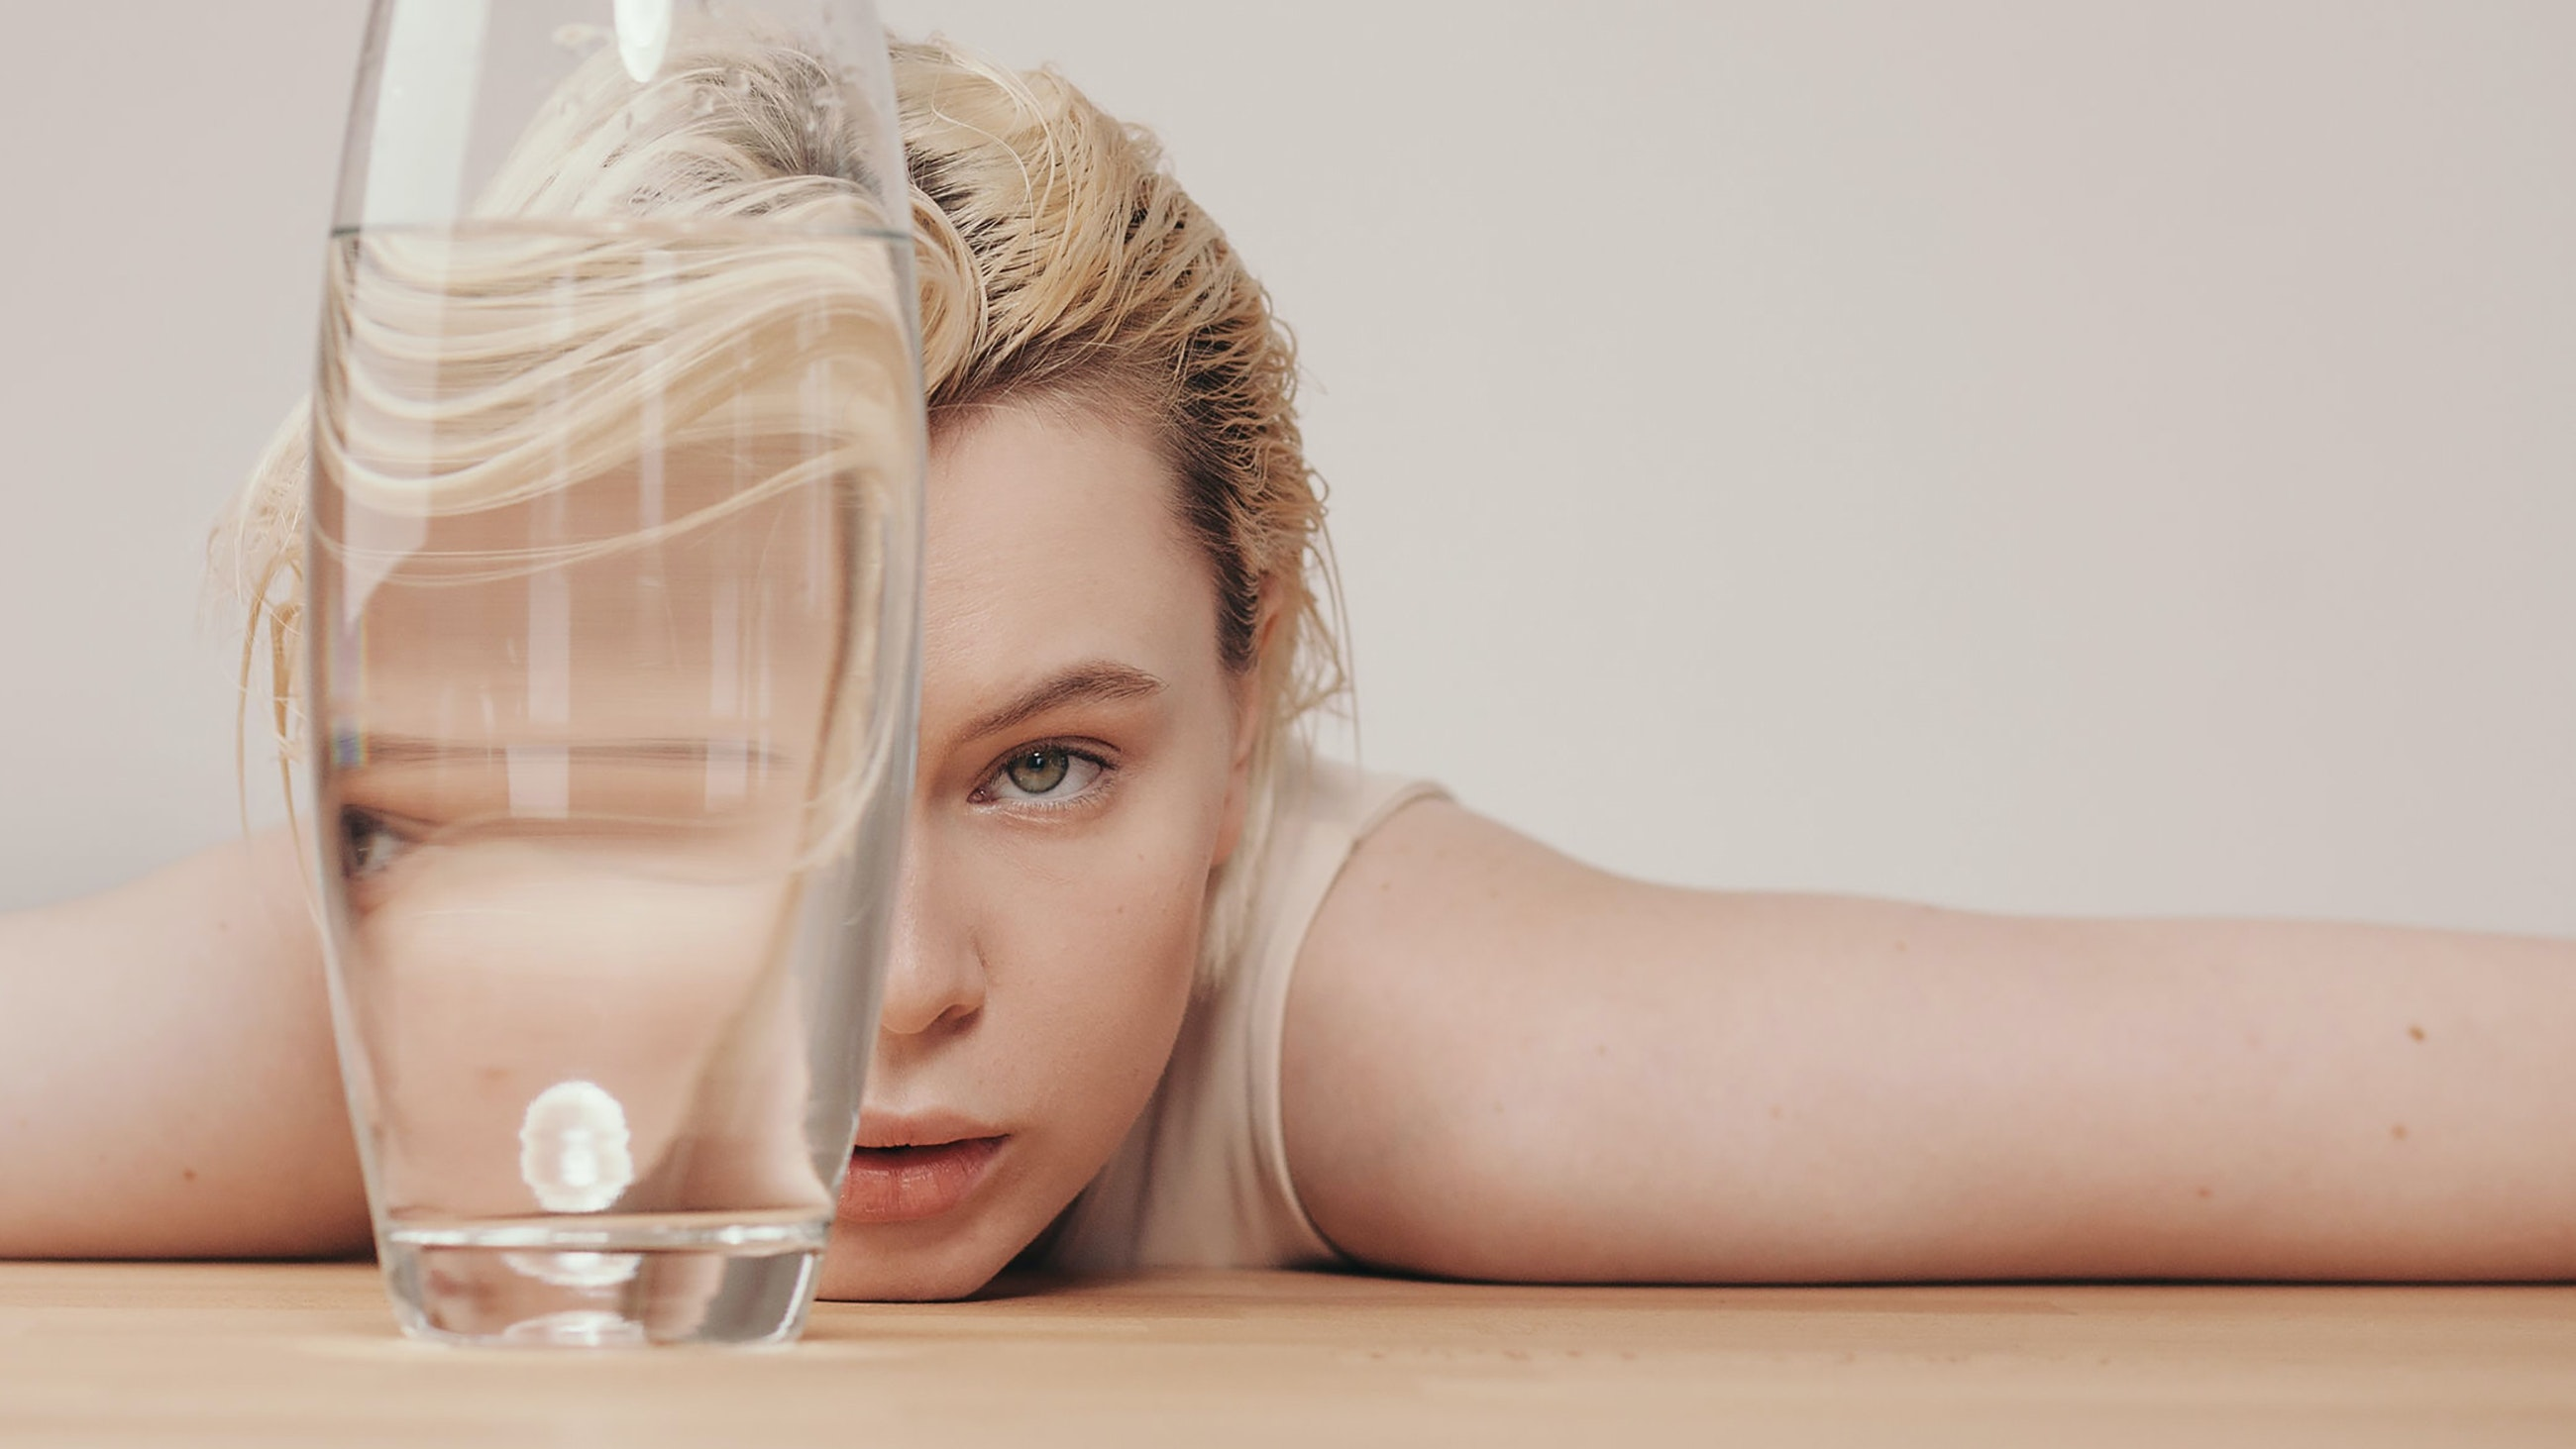 Drinkable Retinol: The Skincare Trend We Didn't See Coming